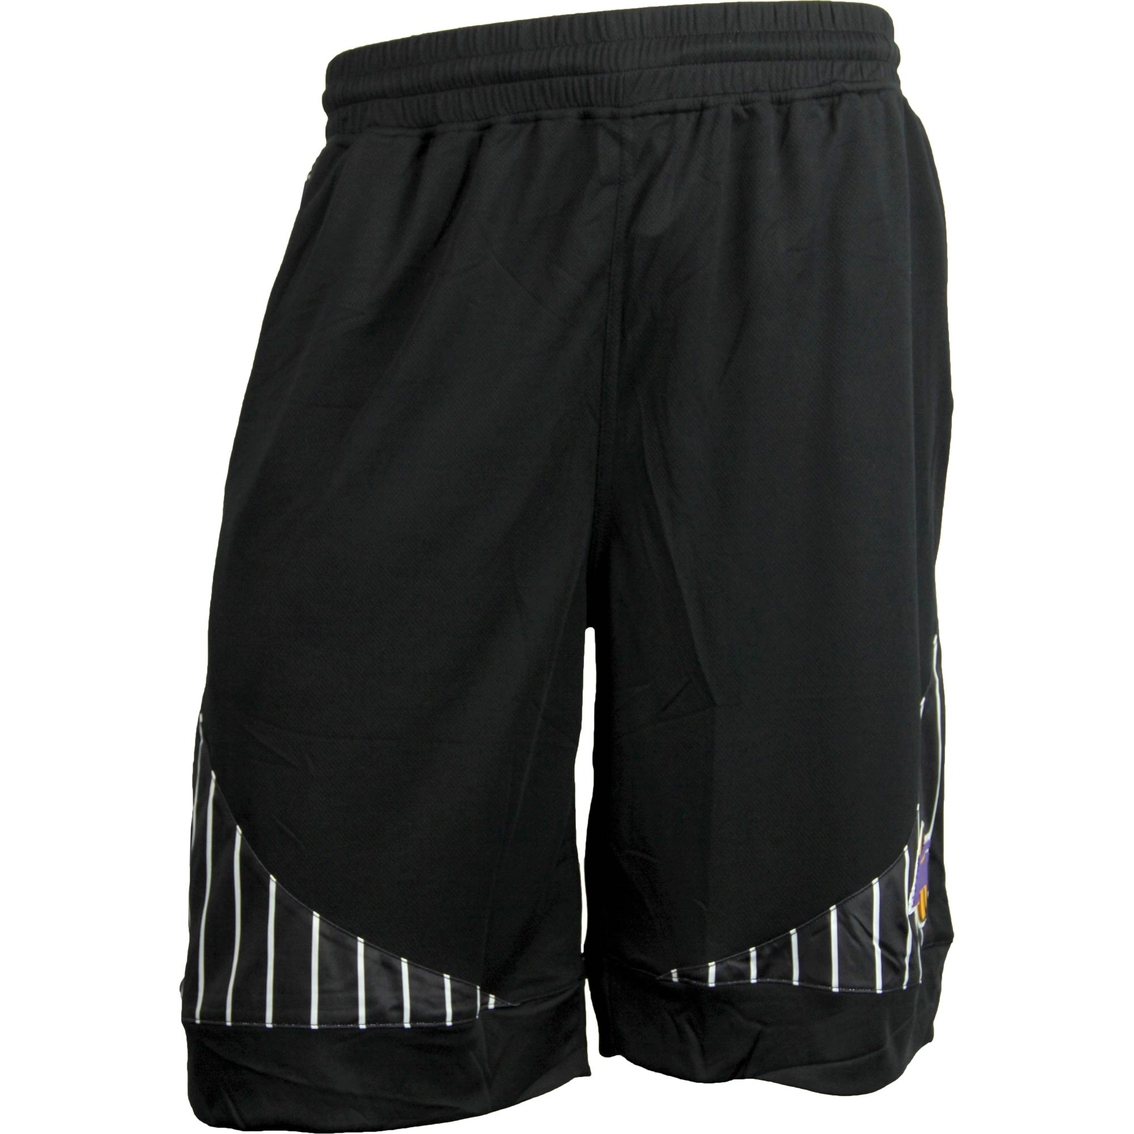 eec0079c9 Zipway Nba Los Angeles Lakers Pinstripe Shorts